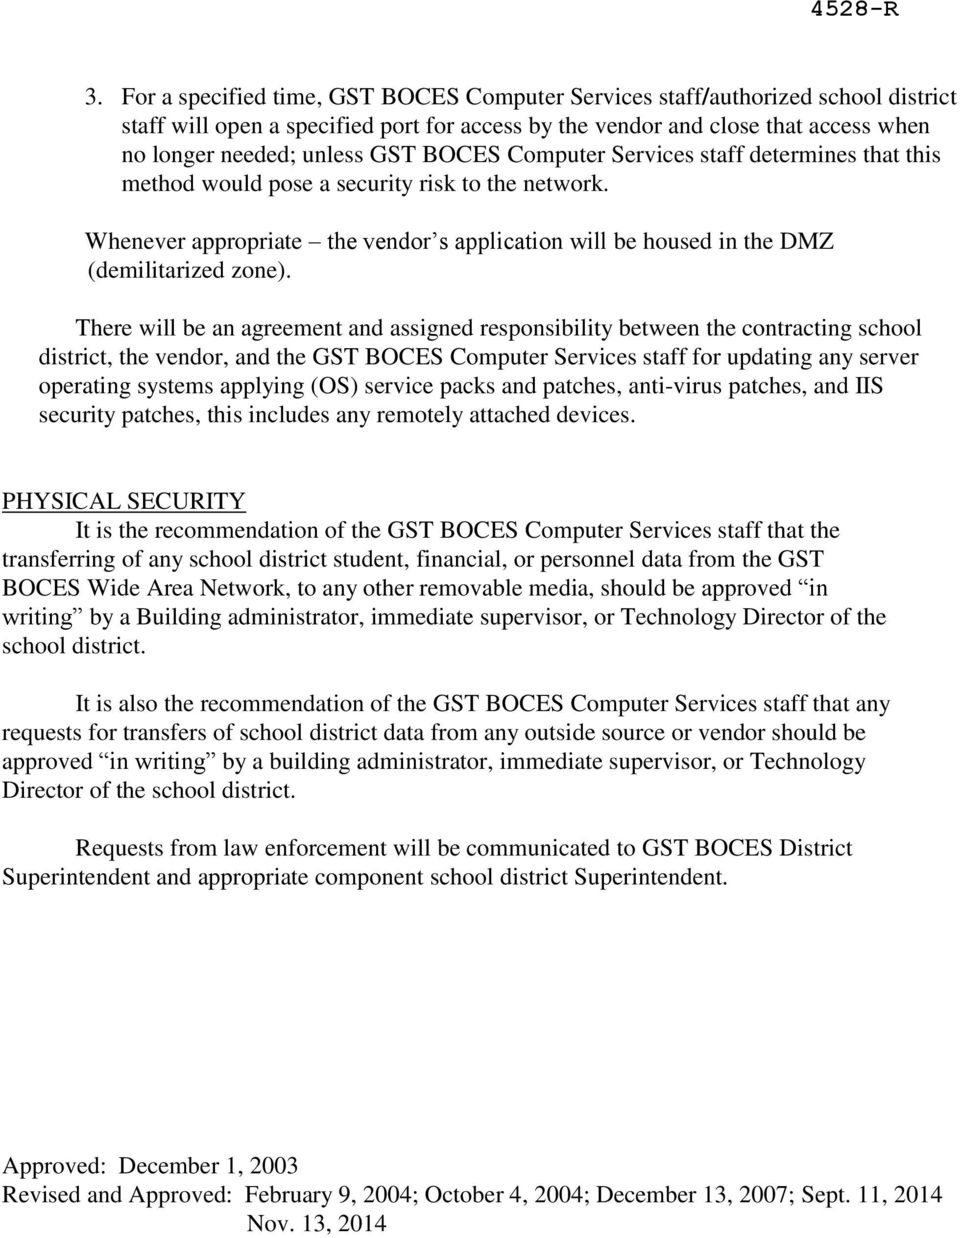 There will be an agreement and assigned responsibility between the contracting school district, the vendor, and the GST BOCES Computer Services staff for updating any server operating systems